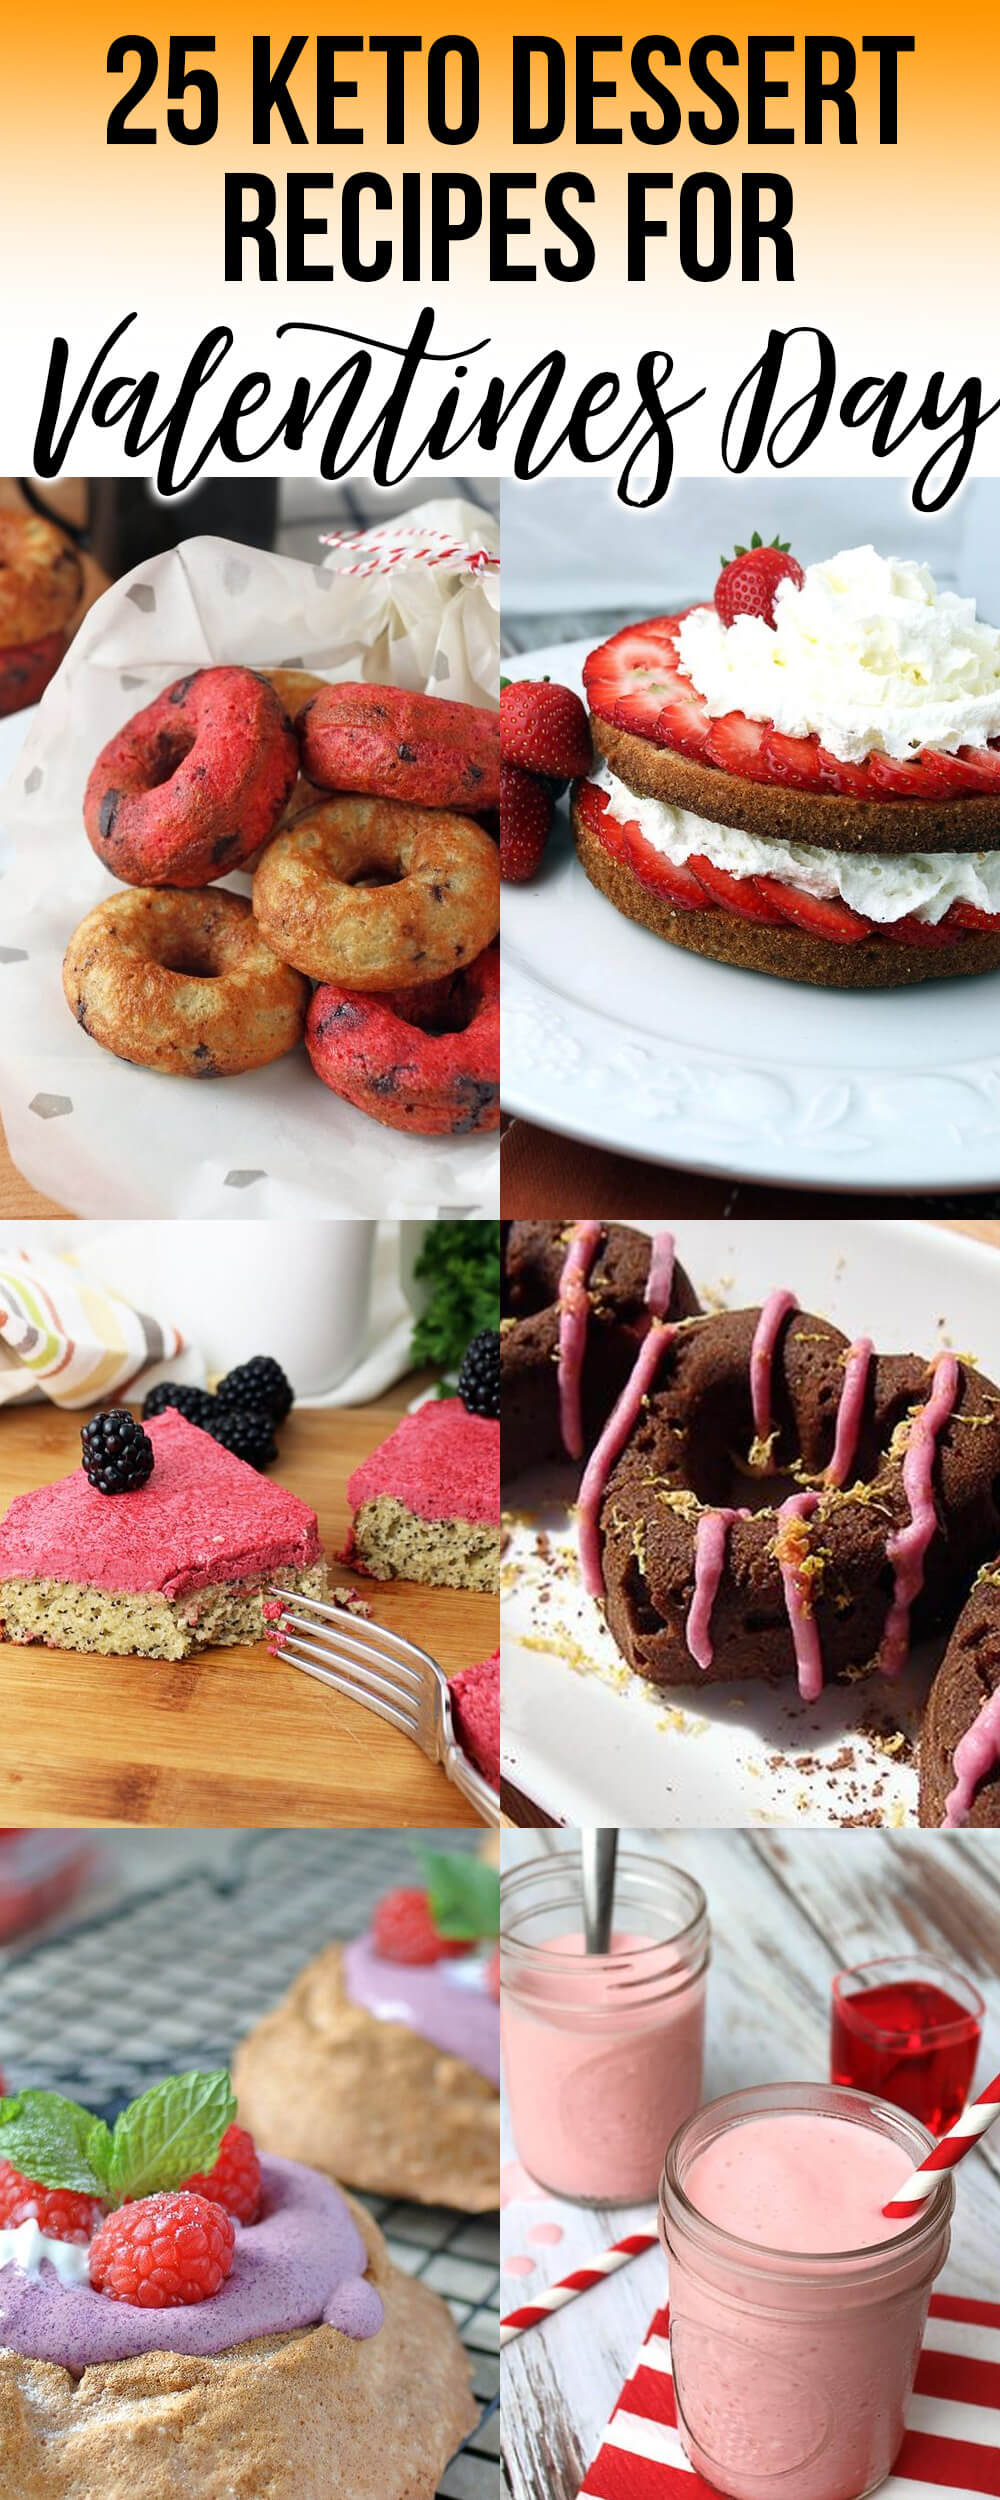 Desserts for a Keto Valentines Day!